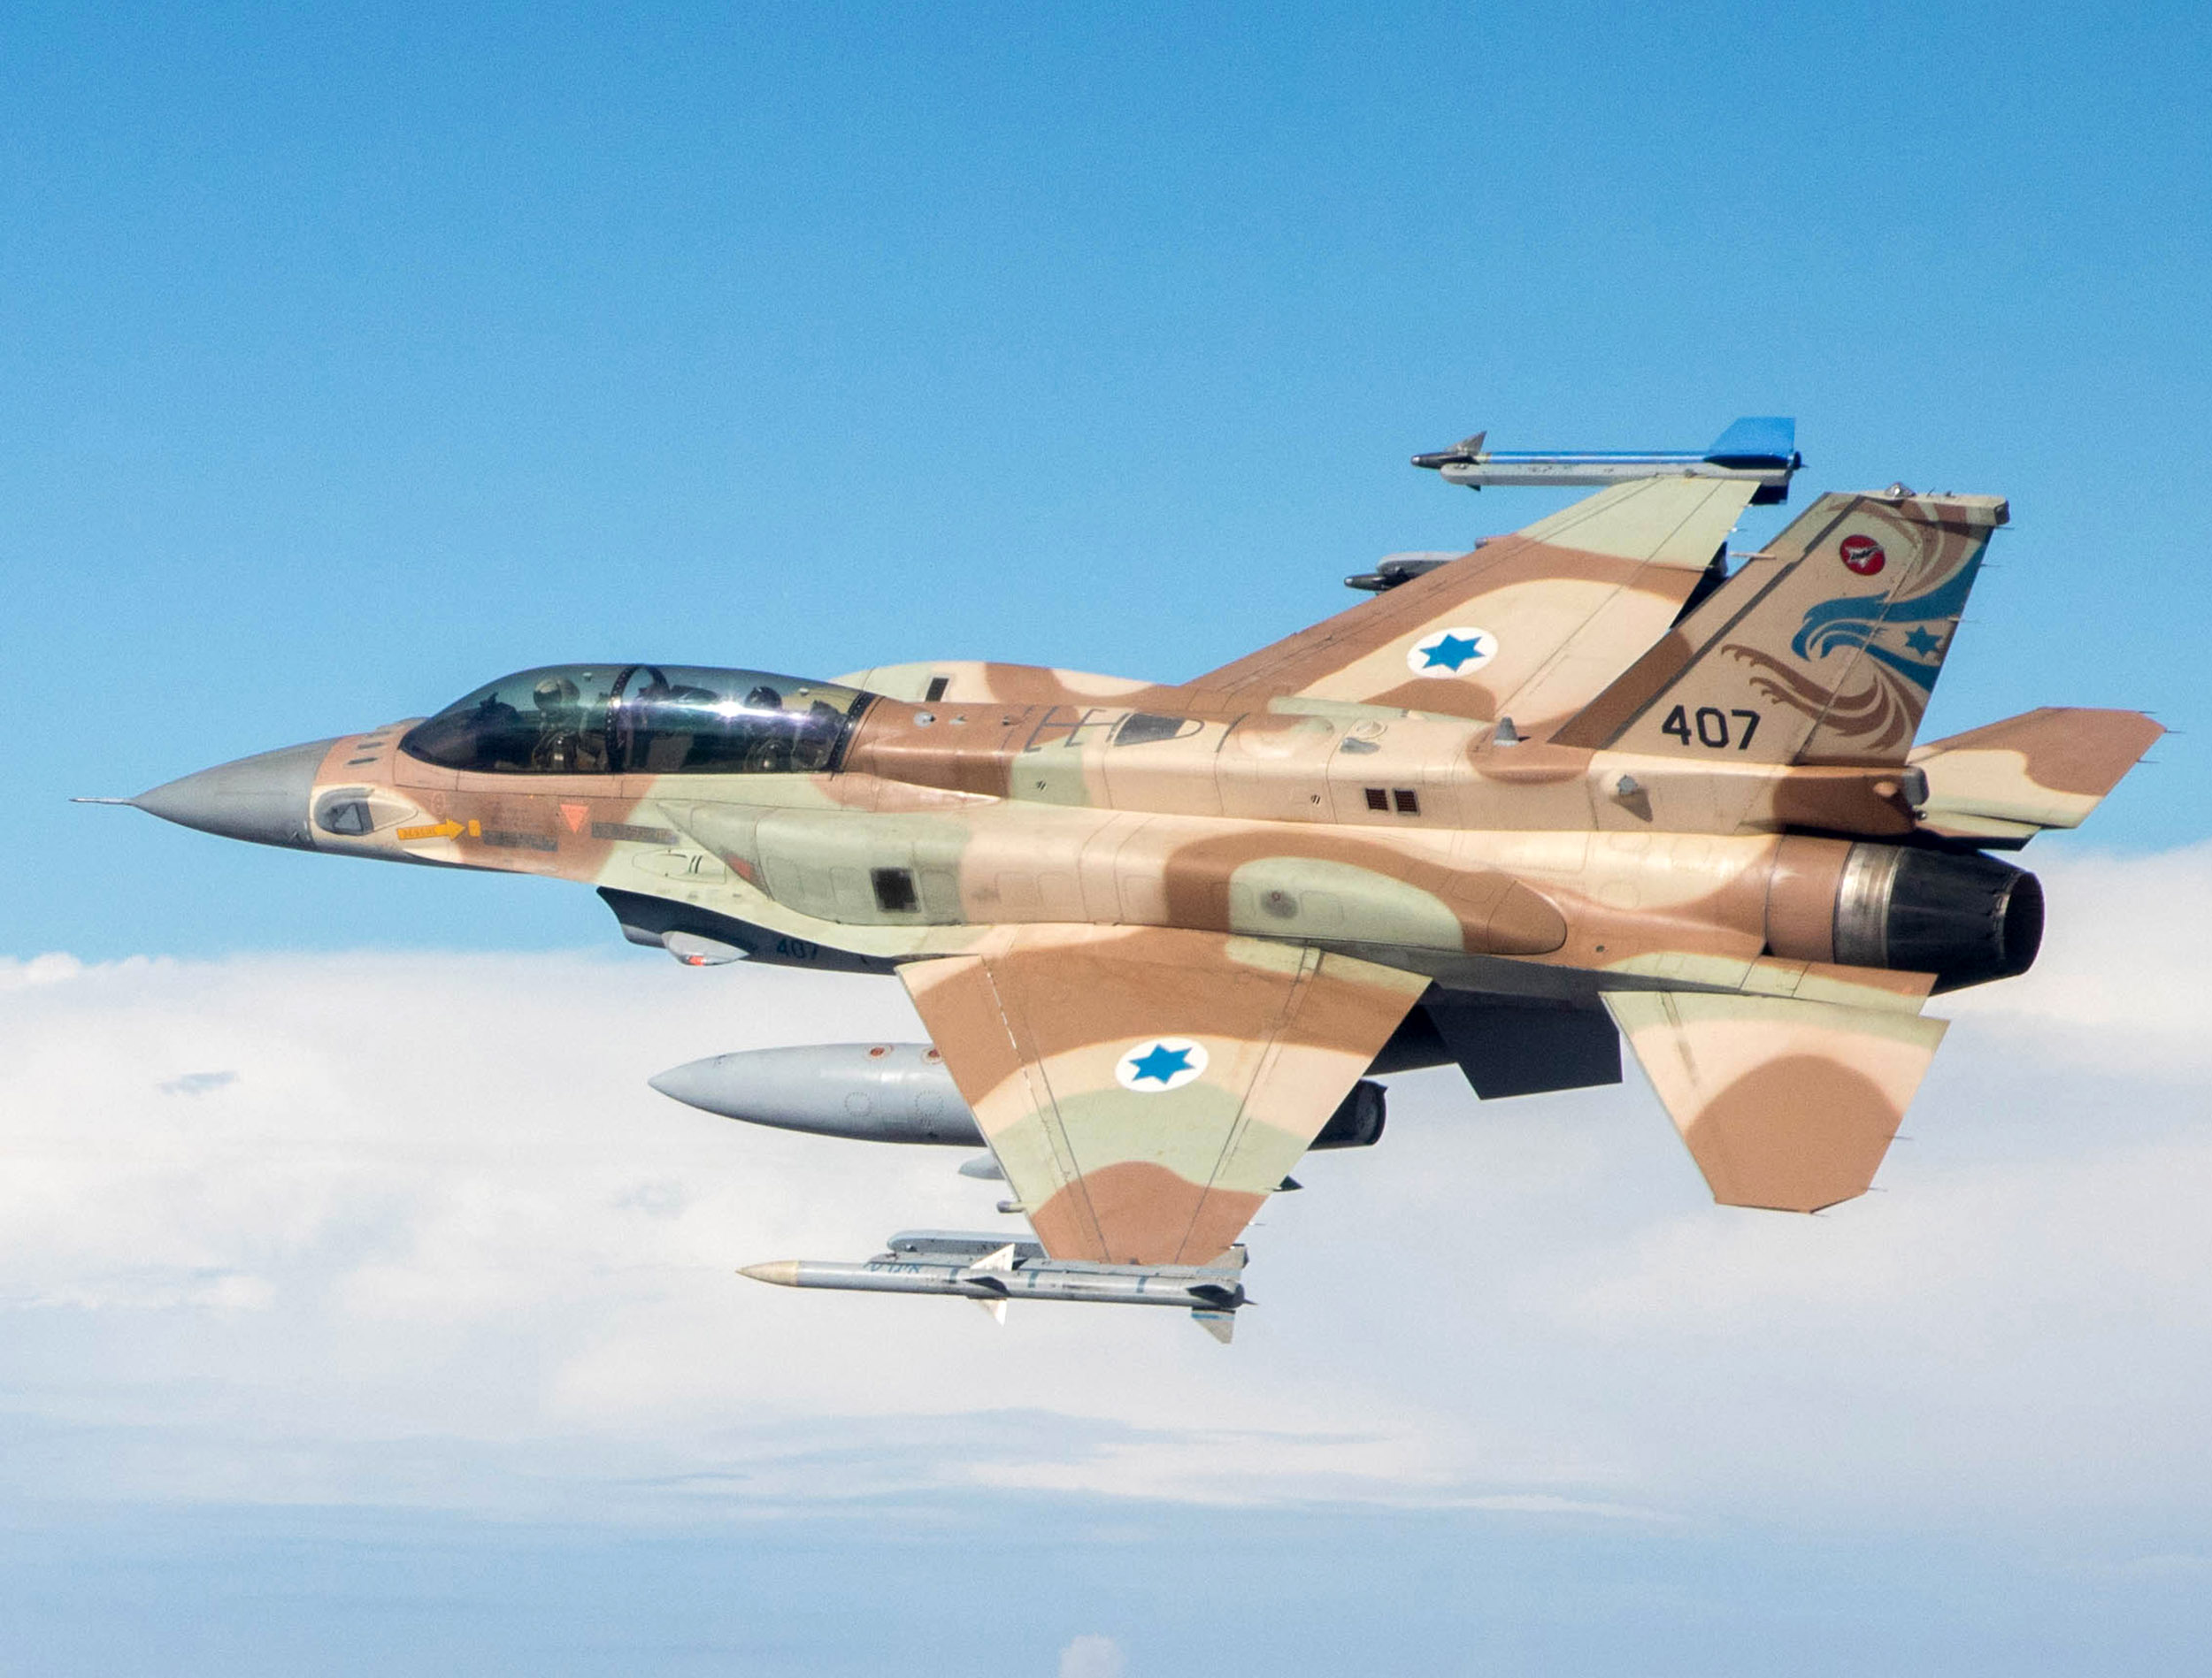 Israeli's Deadly Air Force Has Been Destroying Syria's Russian-Built Air Defense Systems